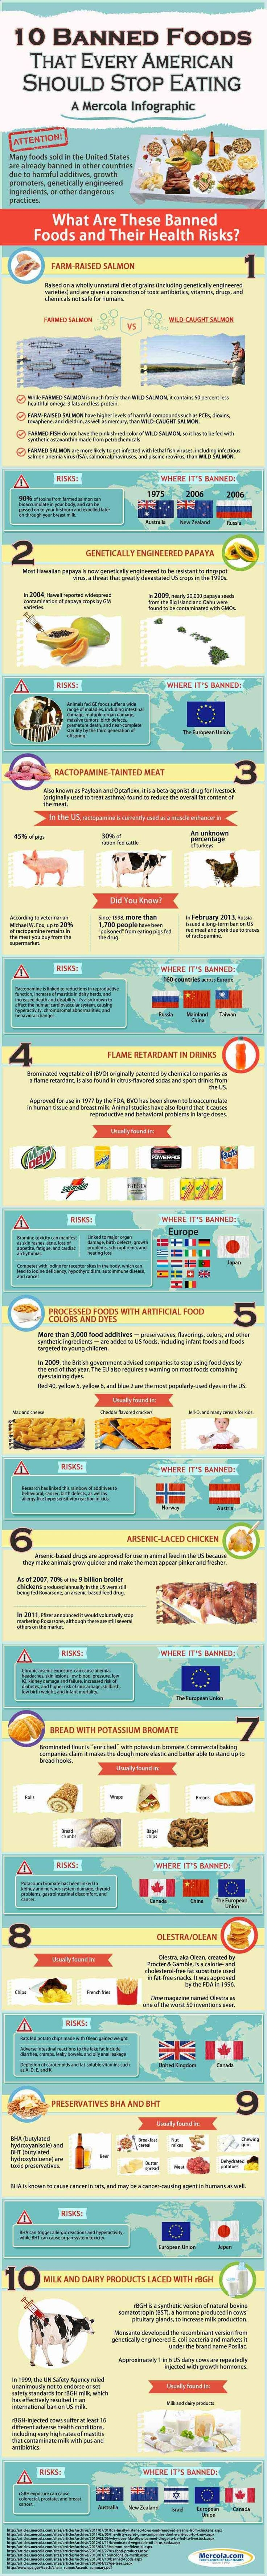 Are you eating food that's already banned in other countries but is still allowed to poison and kill Americans? Learn these pernicious ingredients and common foods through this infographic. Use the embed code to share it on your website. <img src=http://media.mercola.com/assets/images/infographic/banned-foods-infographic.jpg alt=10 Banned Foods to Avoid border=0 style=max-width:100%; min-width:300px; margin: 0 auto 20px auto; display:block;><p …